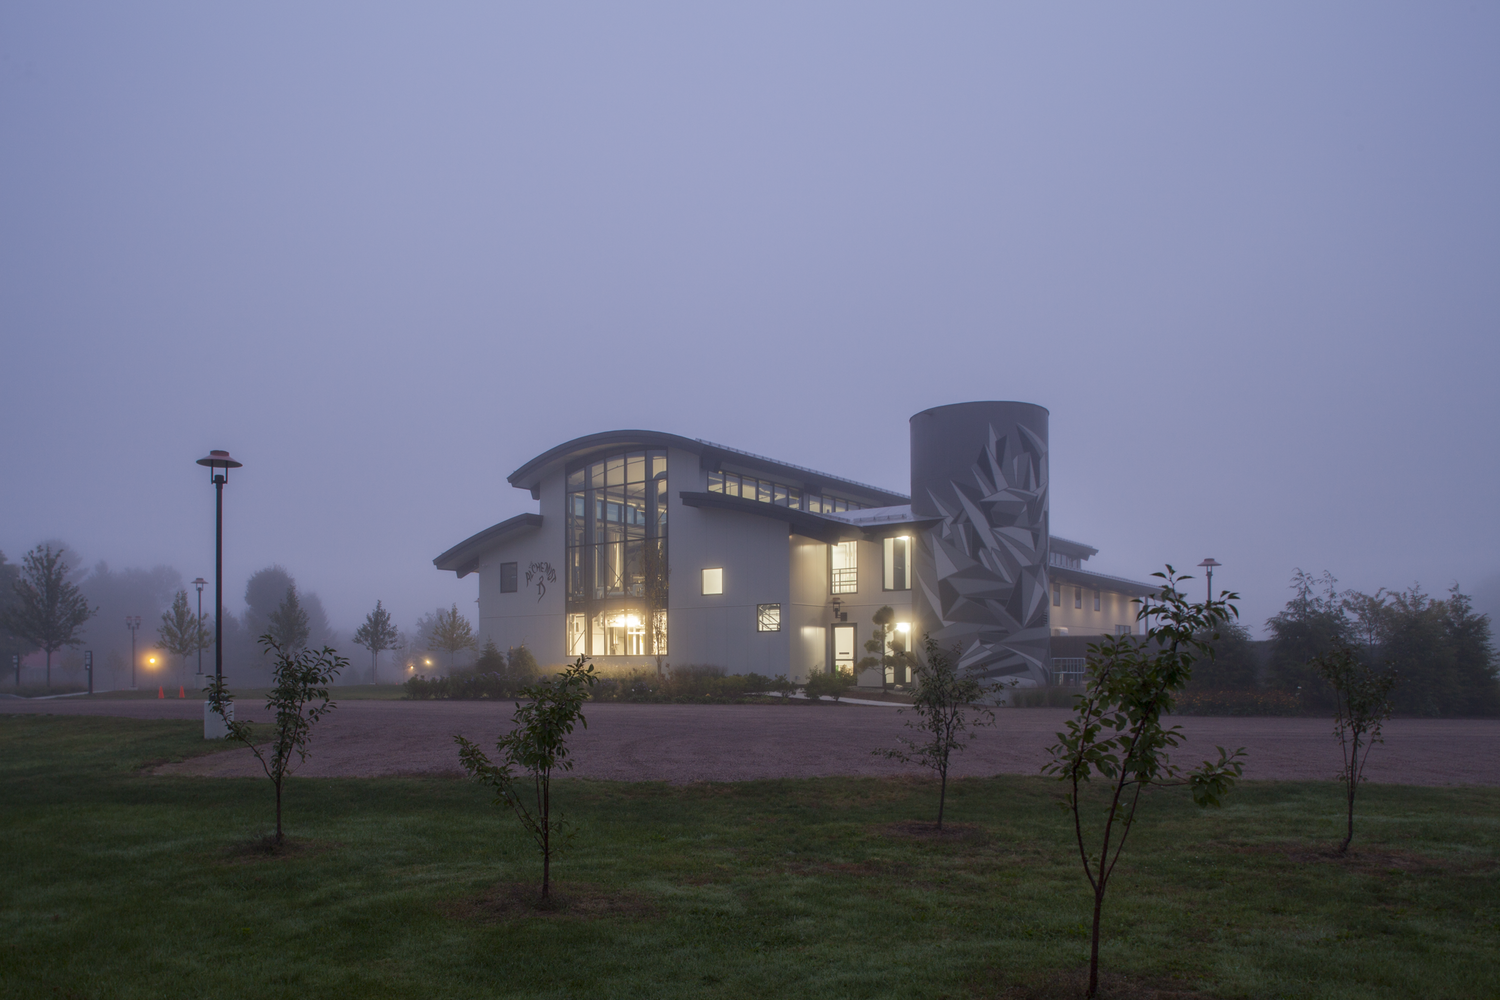 The Alchemist Brewery in Stowe, Vermont at twilight. Architecture by Austin Design, image by    Michael Penney Photography   .